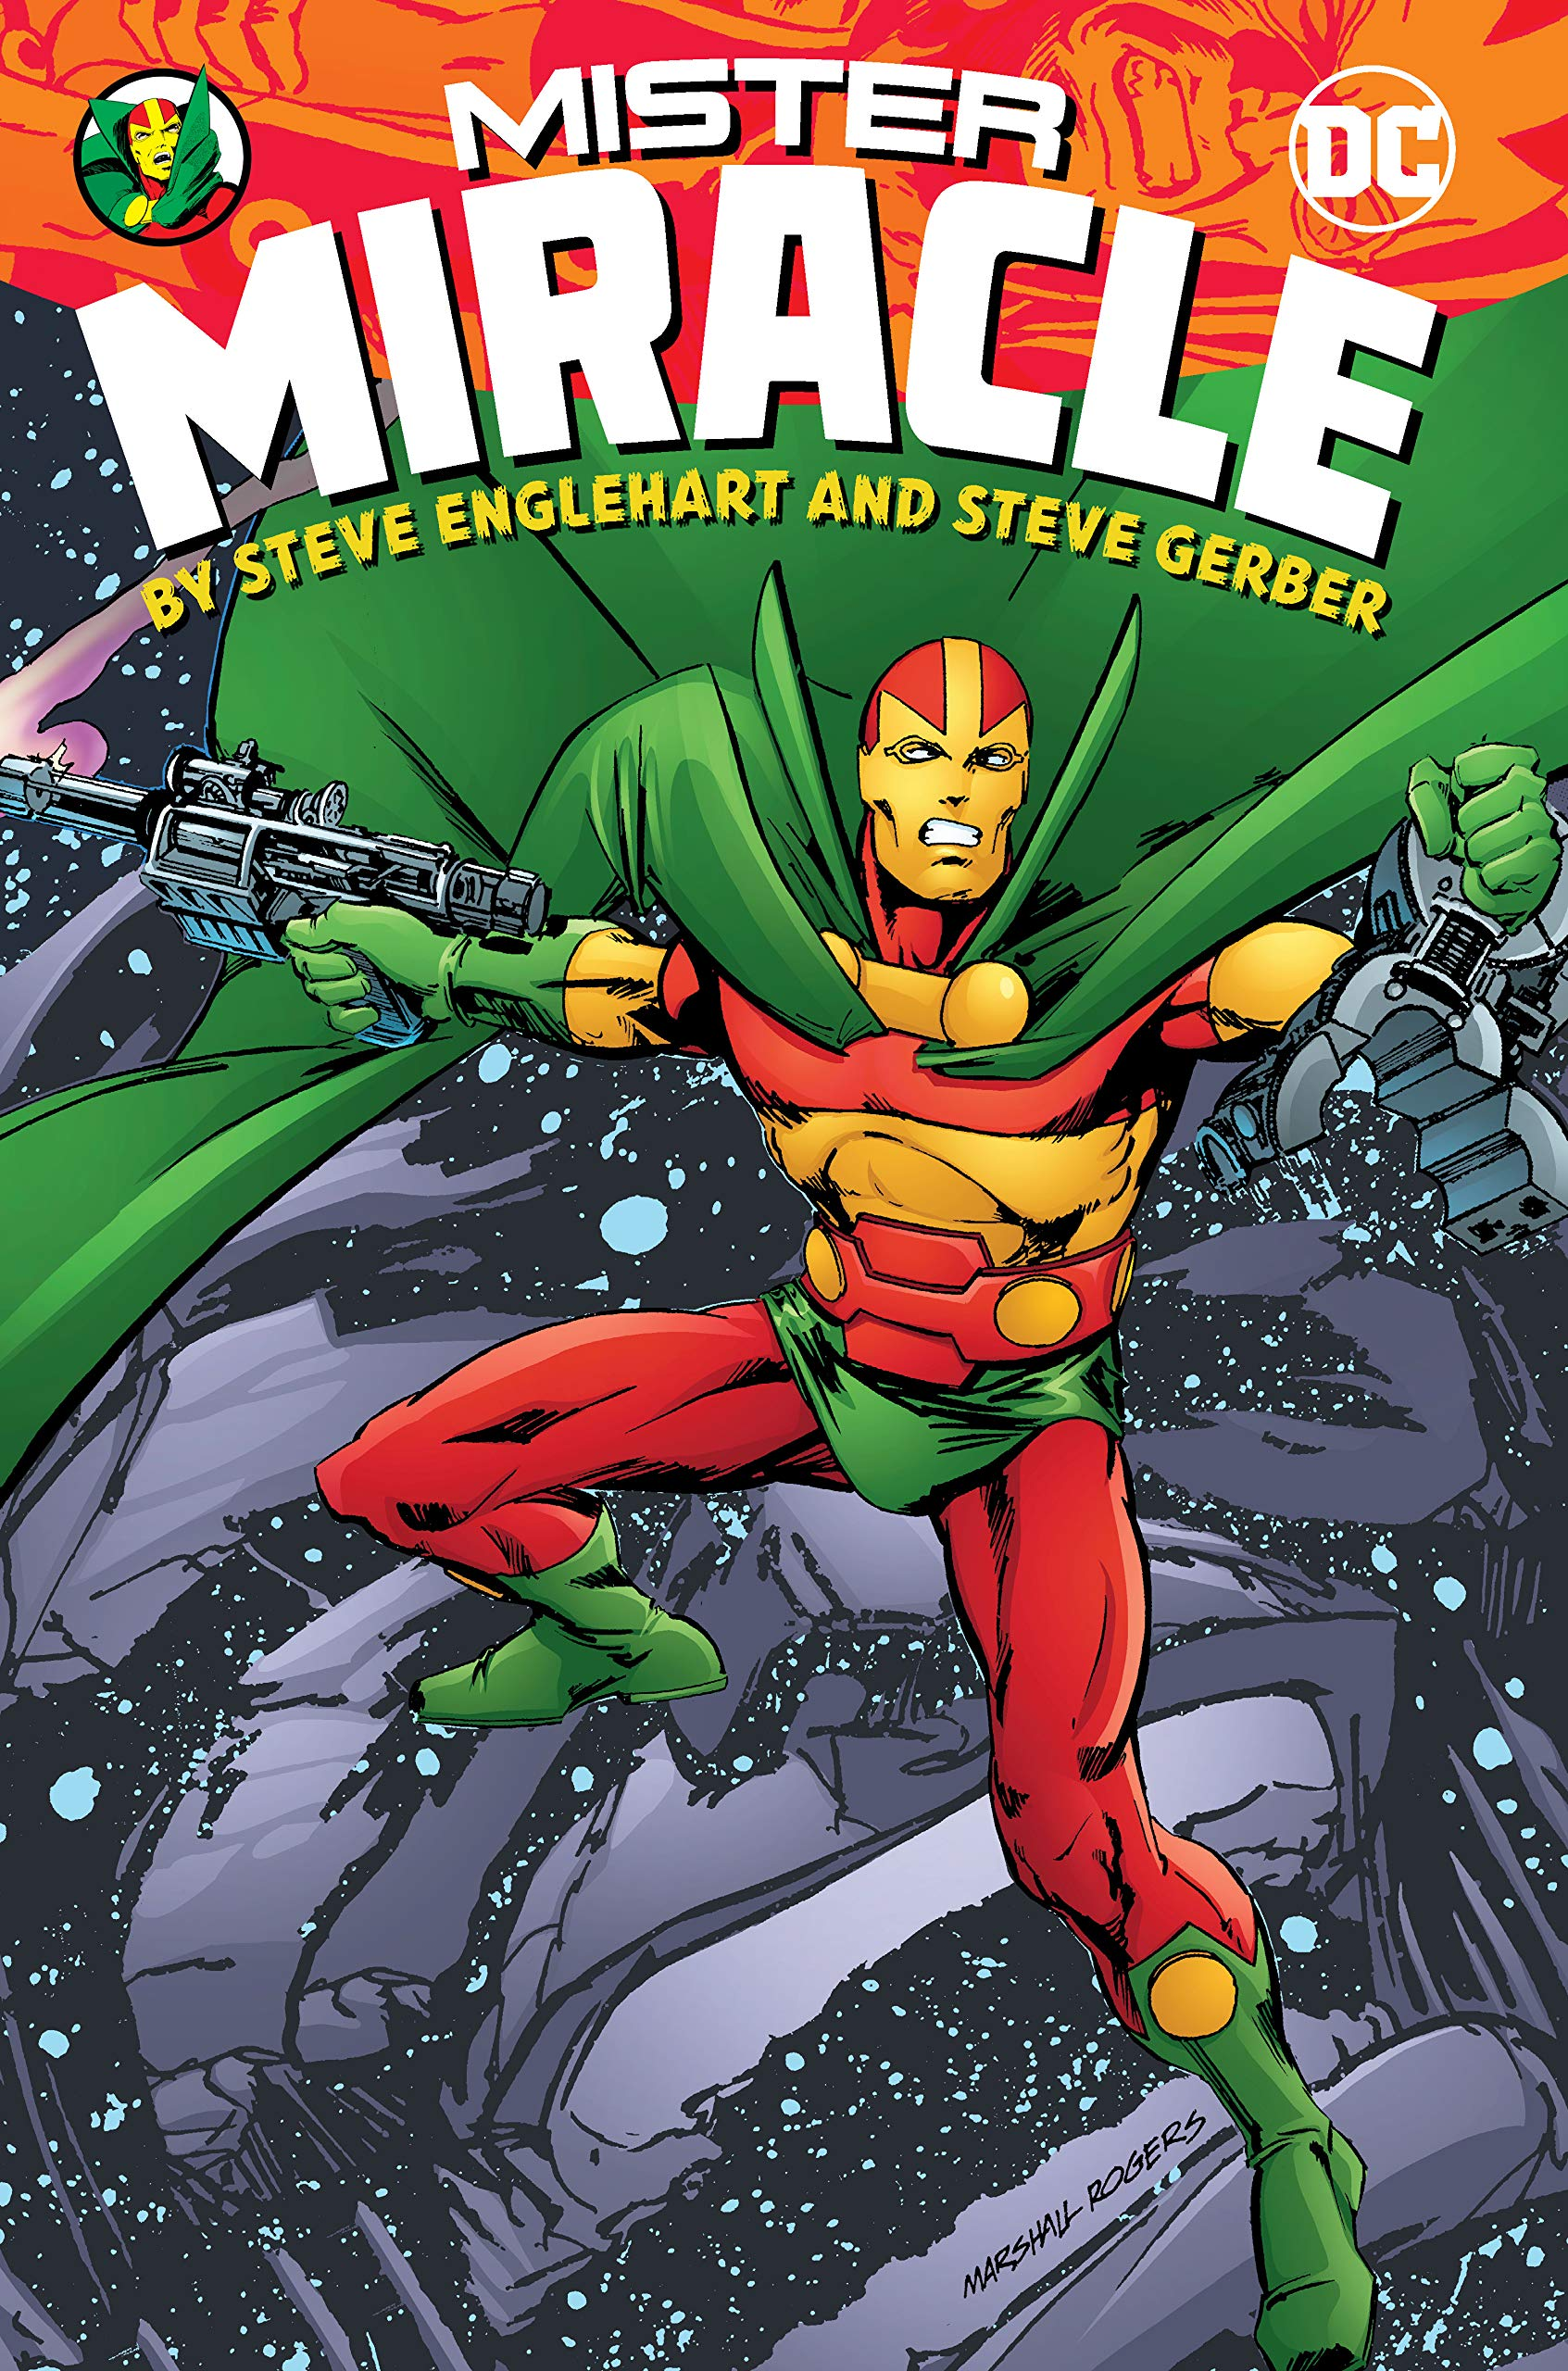 Mister Miracle by Steve Englehart and Steve Gerber (Collected)